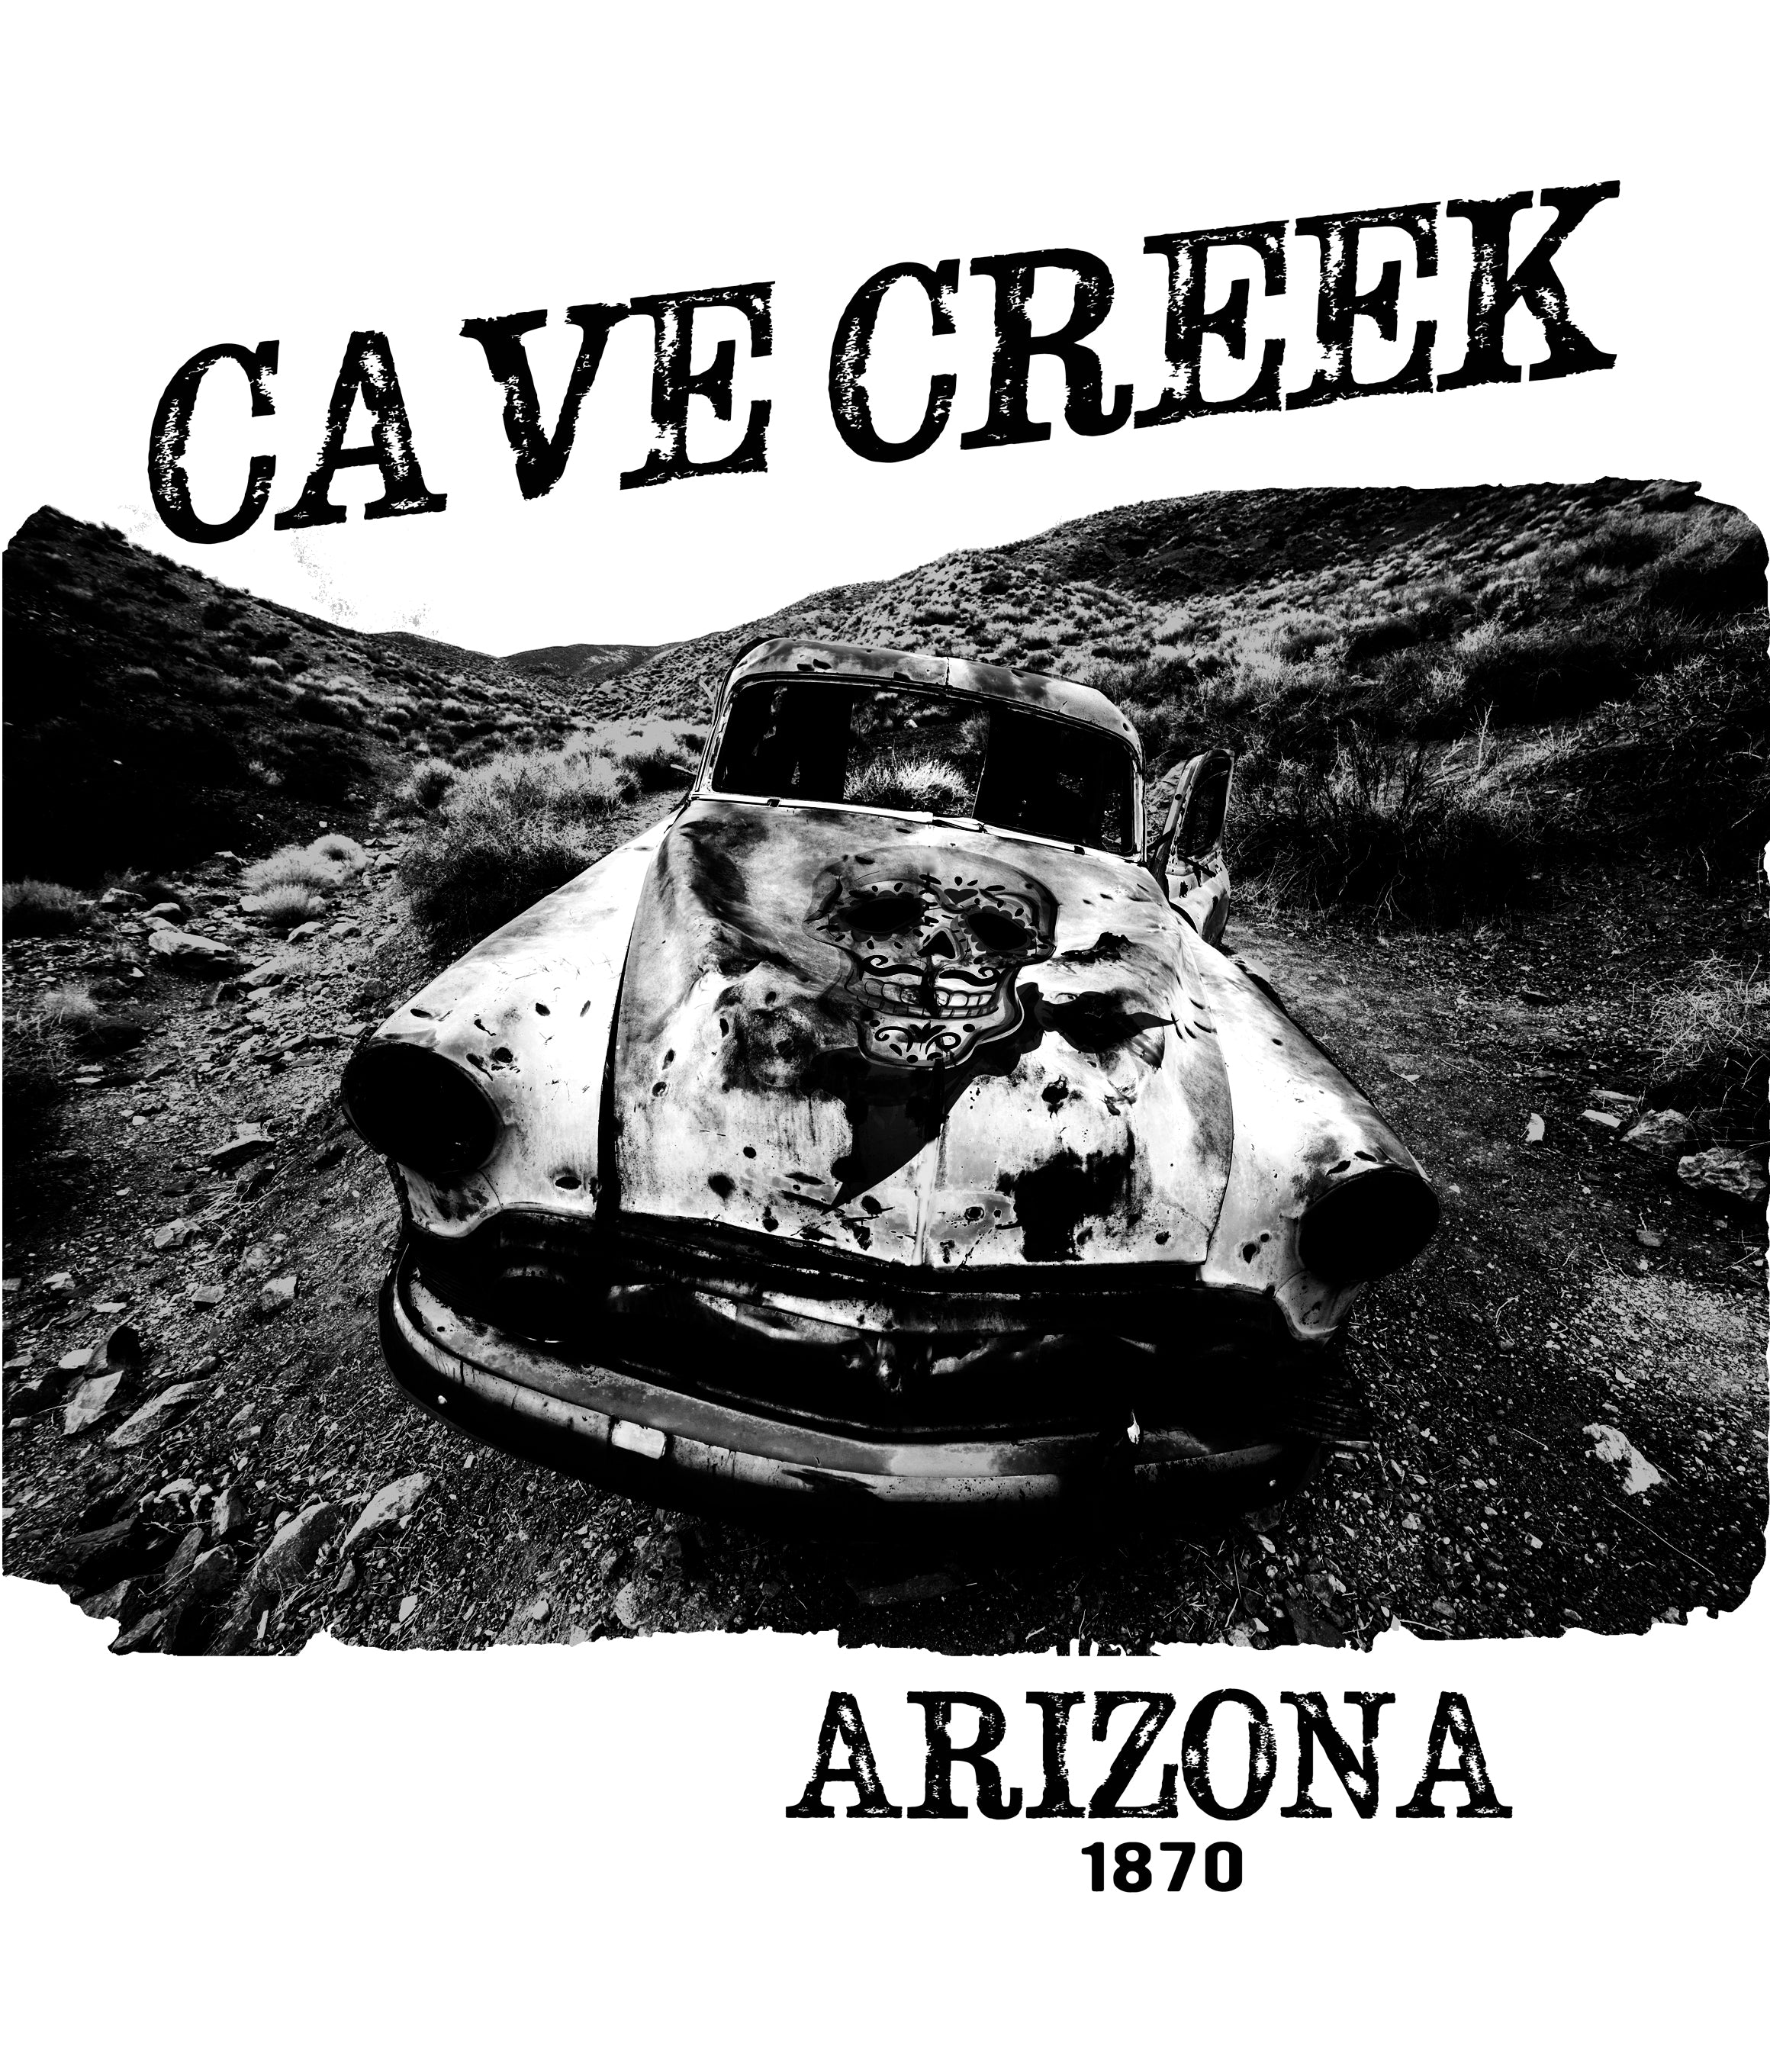 Cave Creek Arizona ladies tank top design closeup